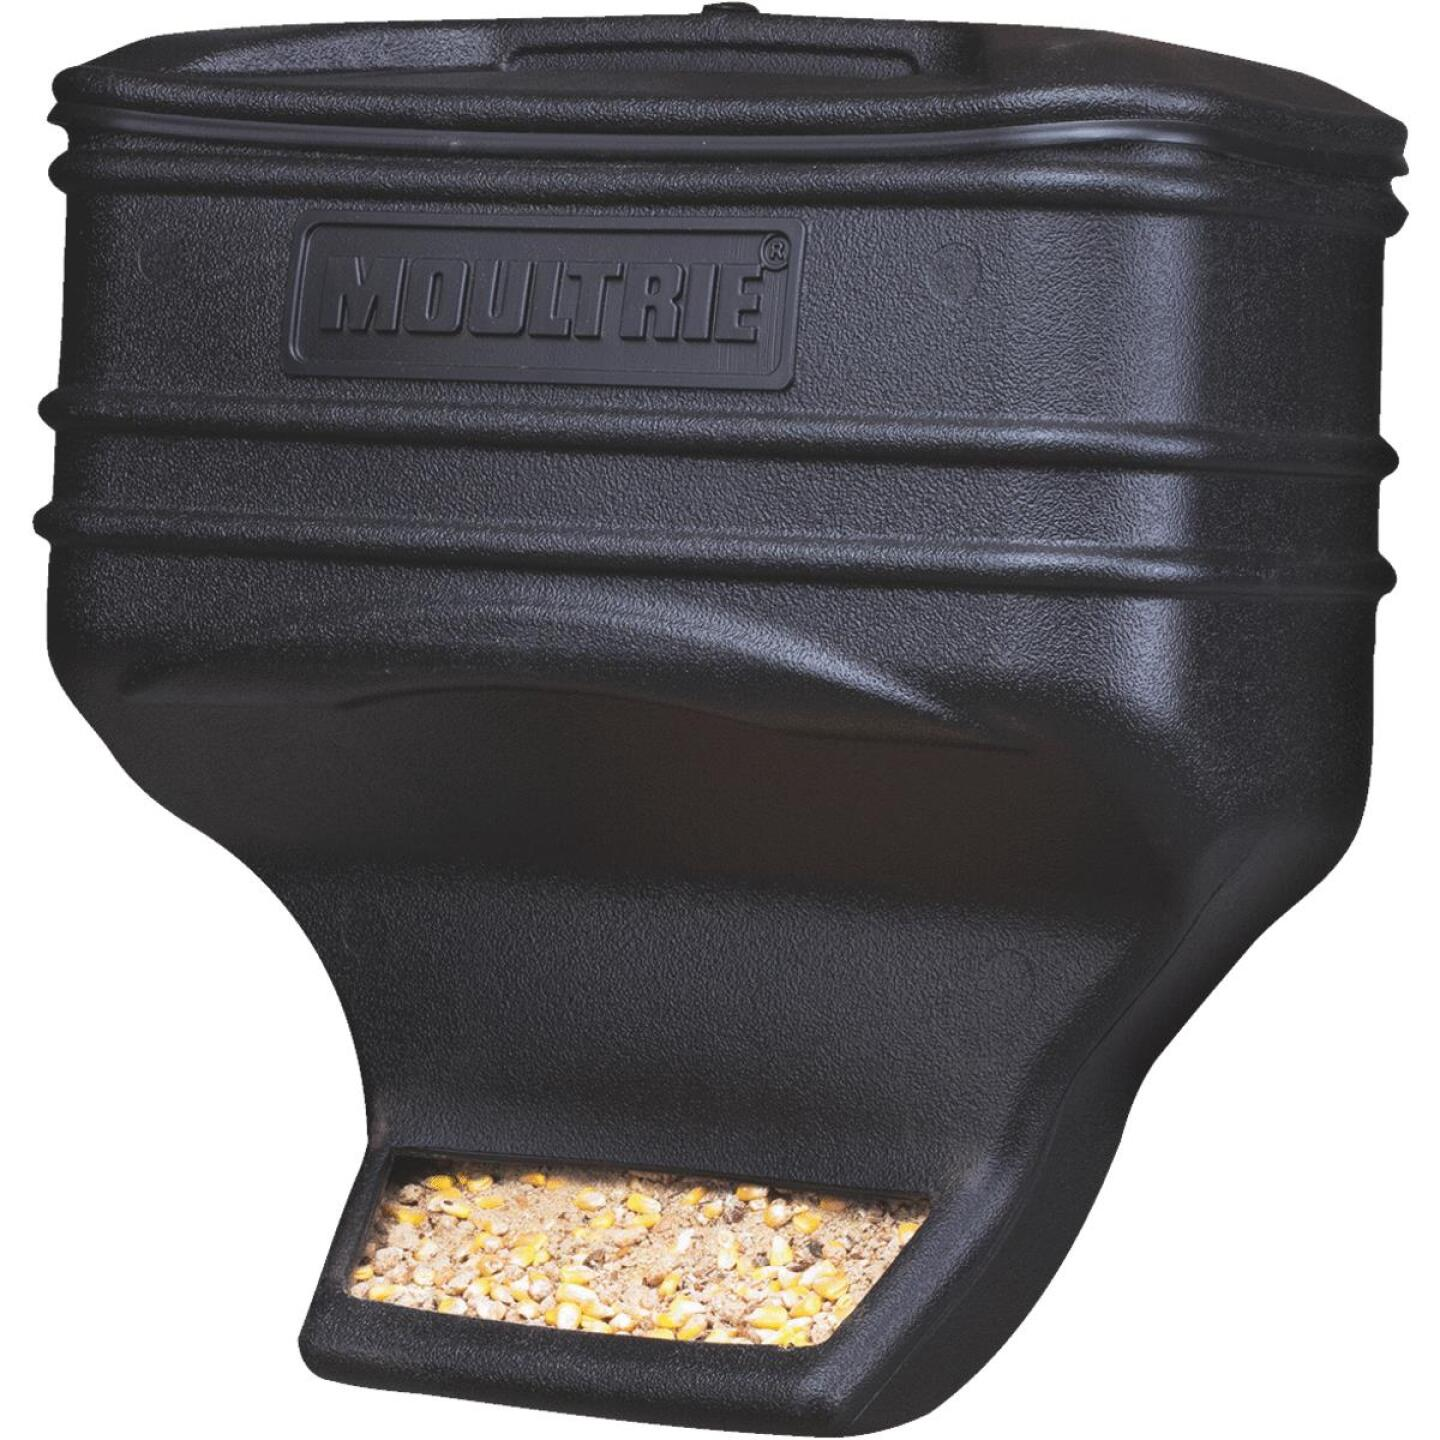 Moultrie 40 Lb. Feed Station Gravity Deer Feeder Image 1